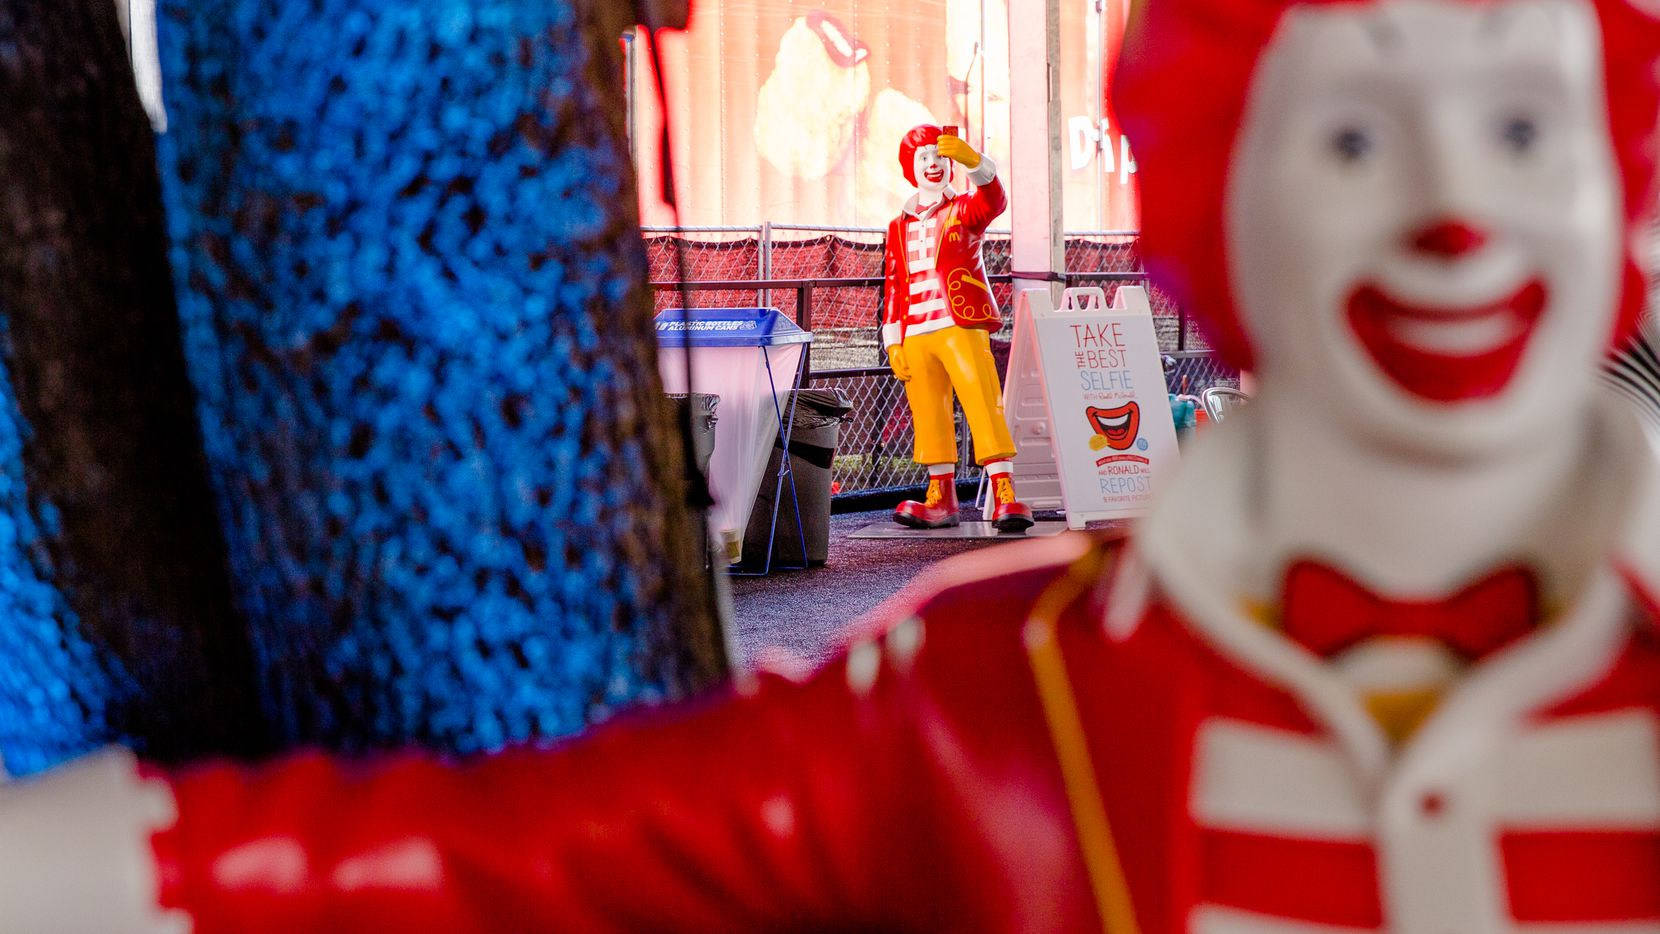 The McDonald's Showcase on 4th and Red River offers badge holders free food, free wifi, charging stations and a music line-up in Austin, Texas on March 18, 2015.